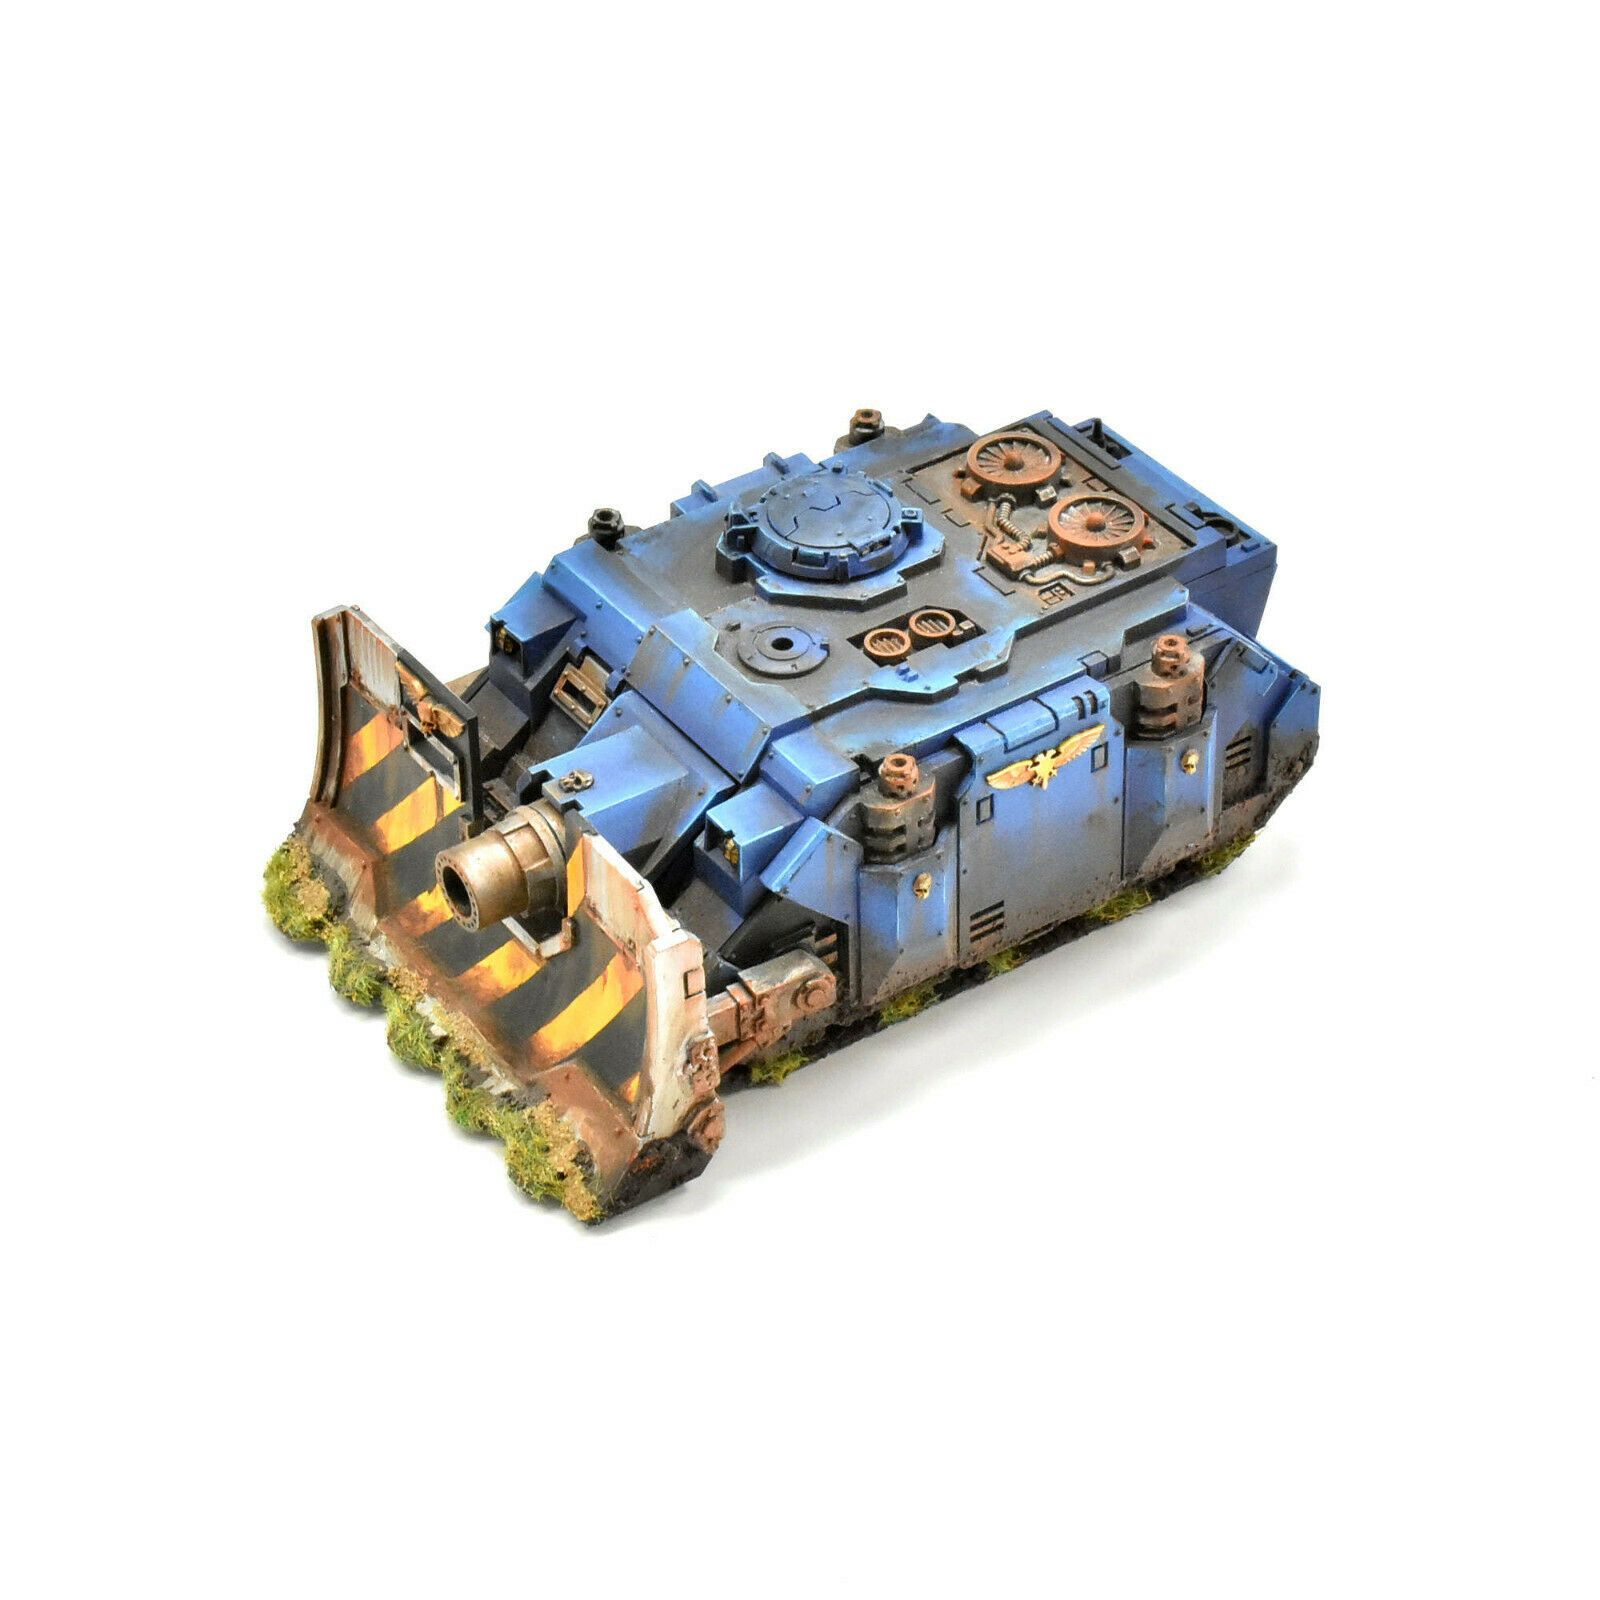 SPACE MARINES vindicator tank tank tank WELL PAINTED